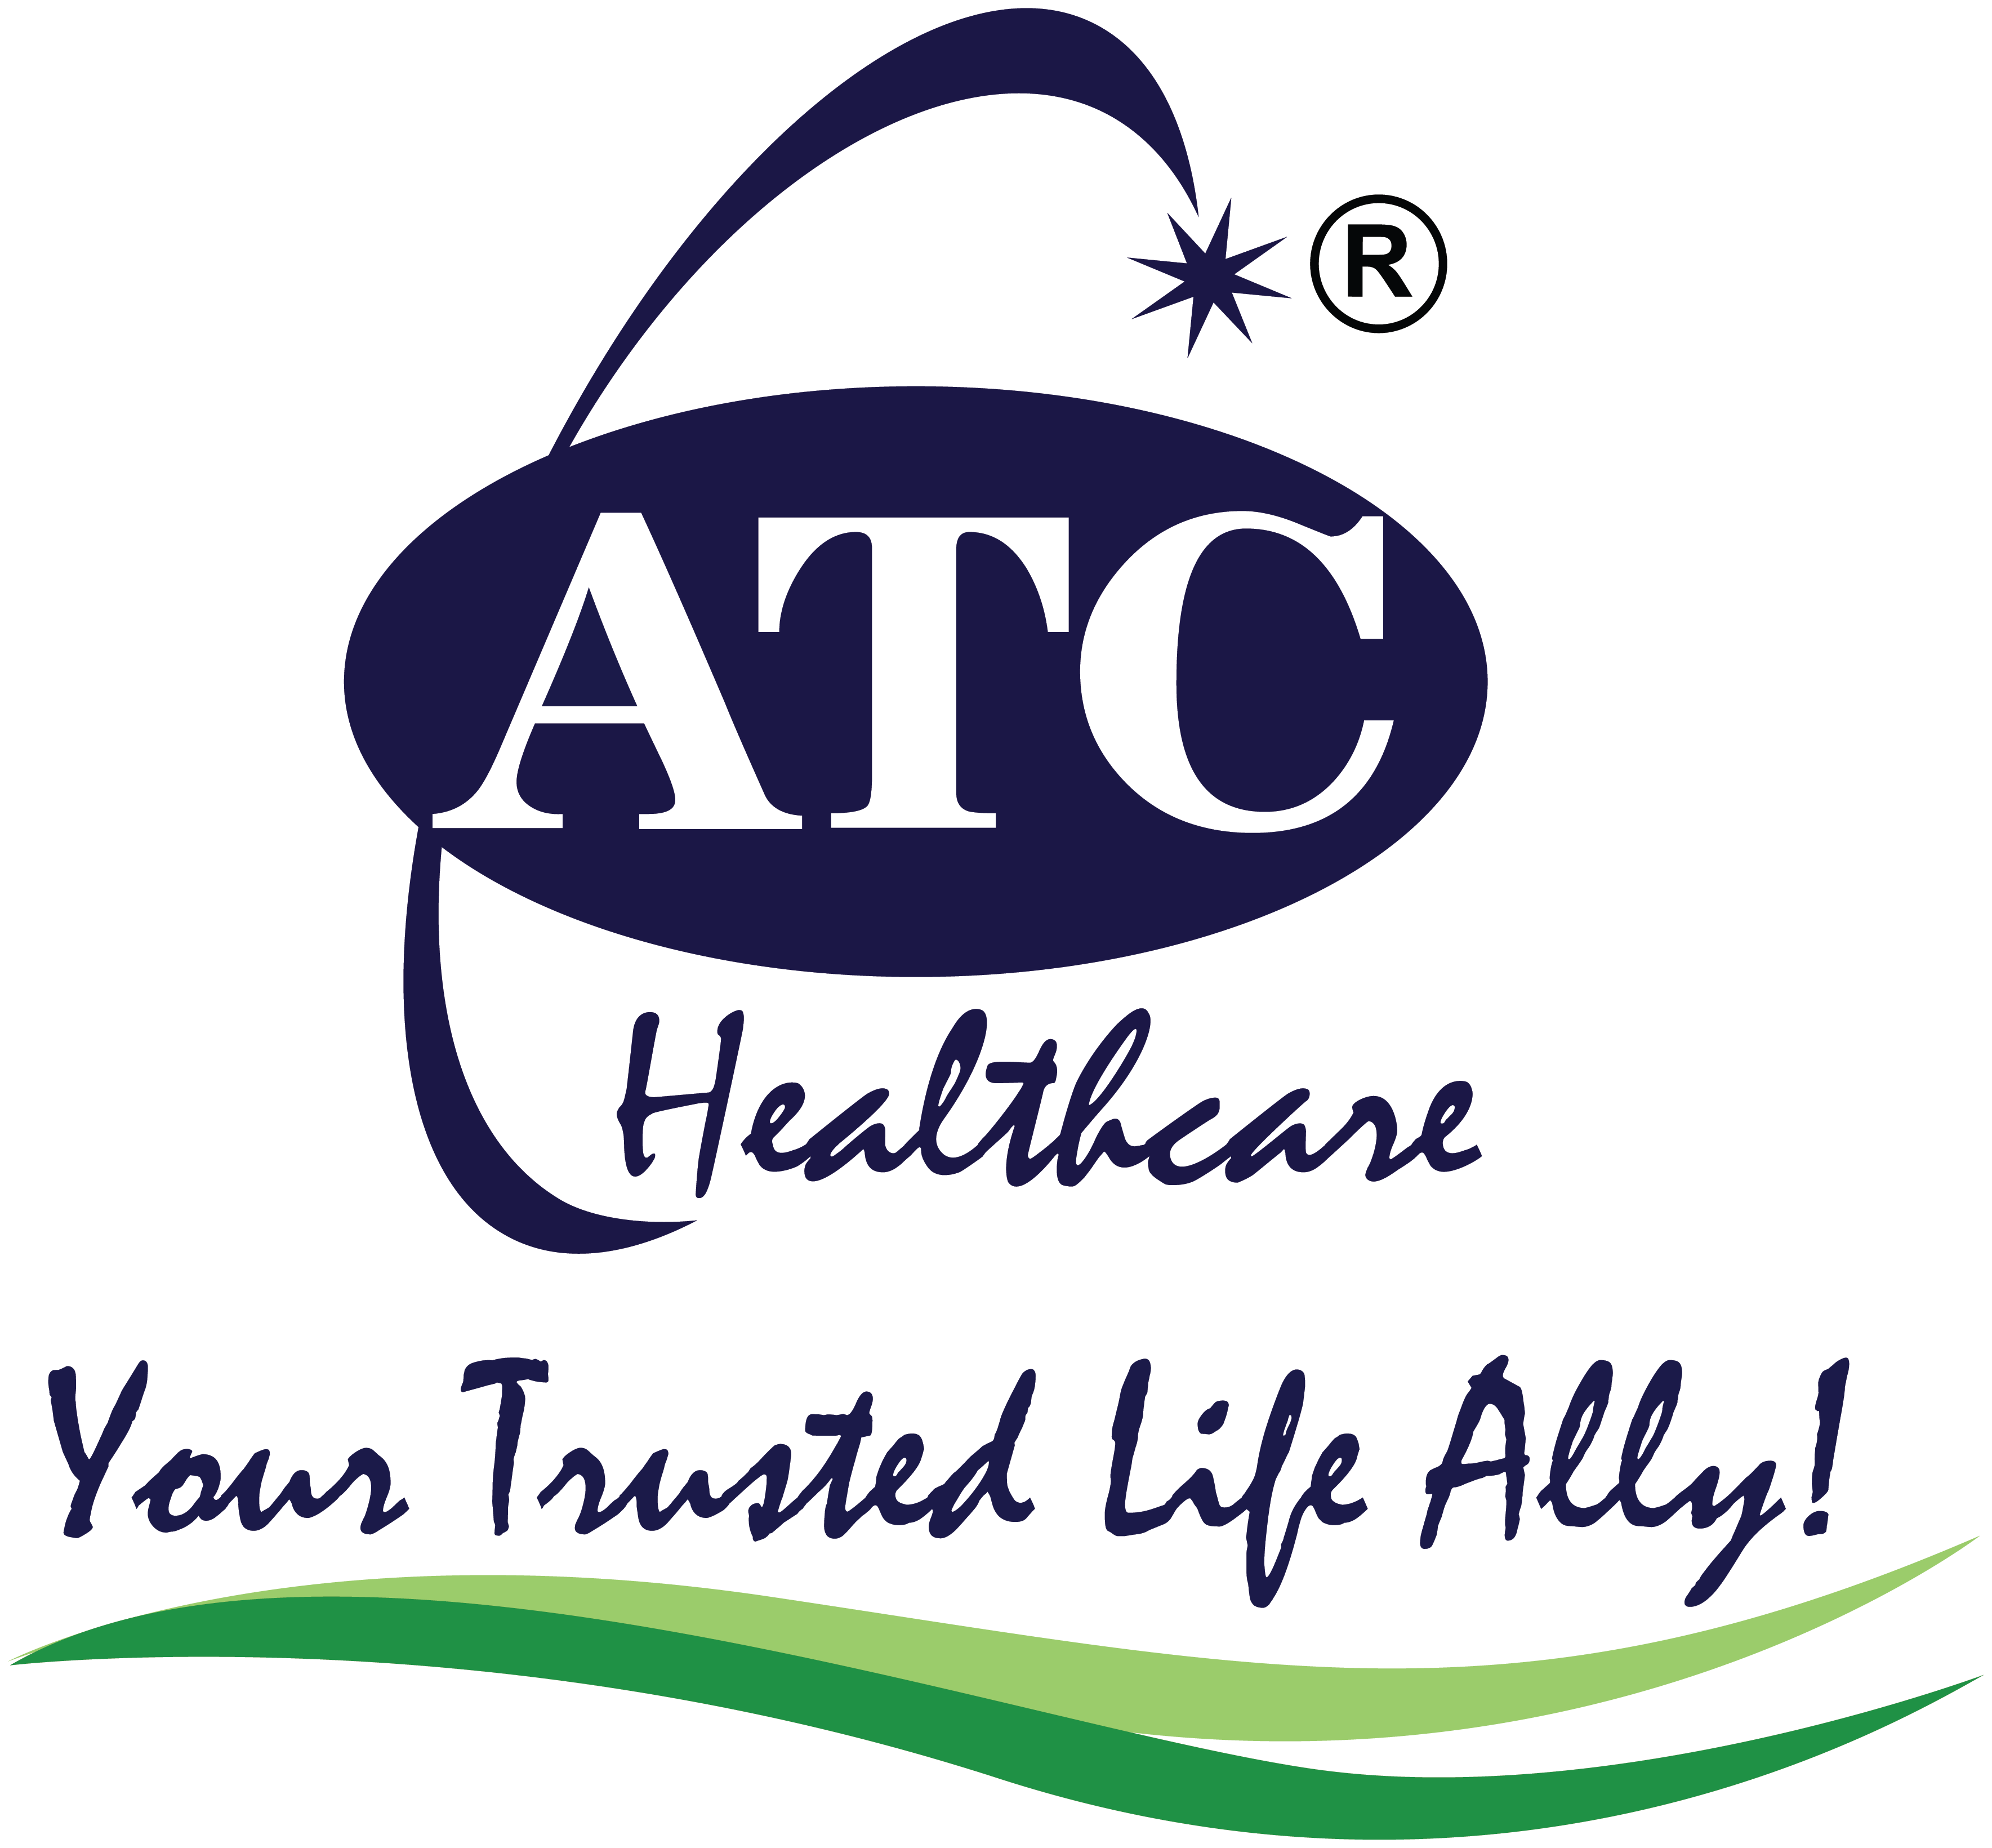 ATC Healthcare - West's logo